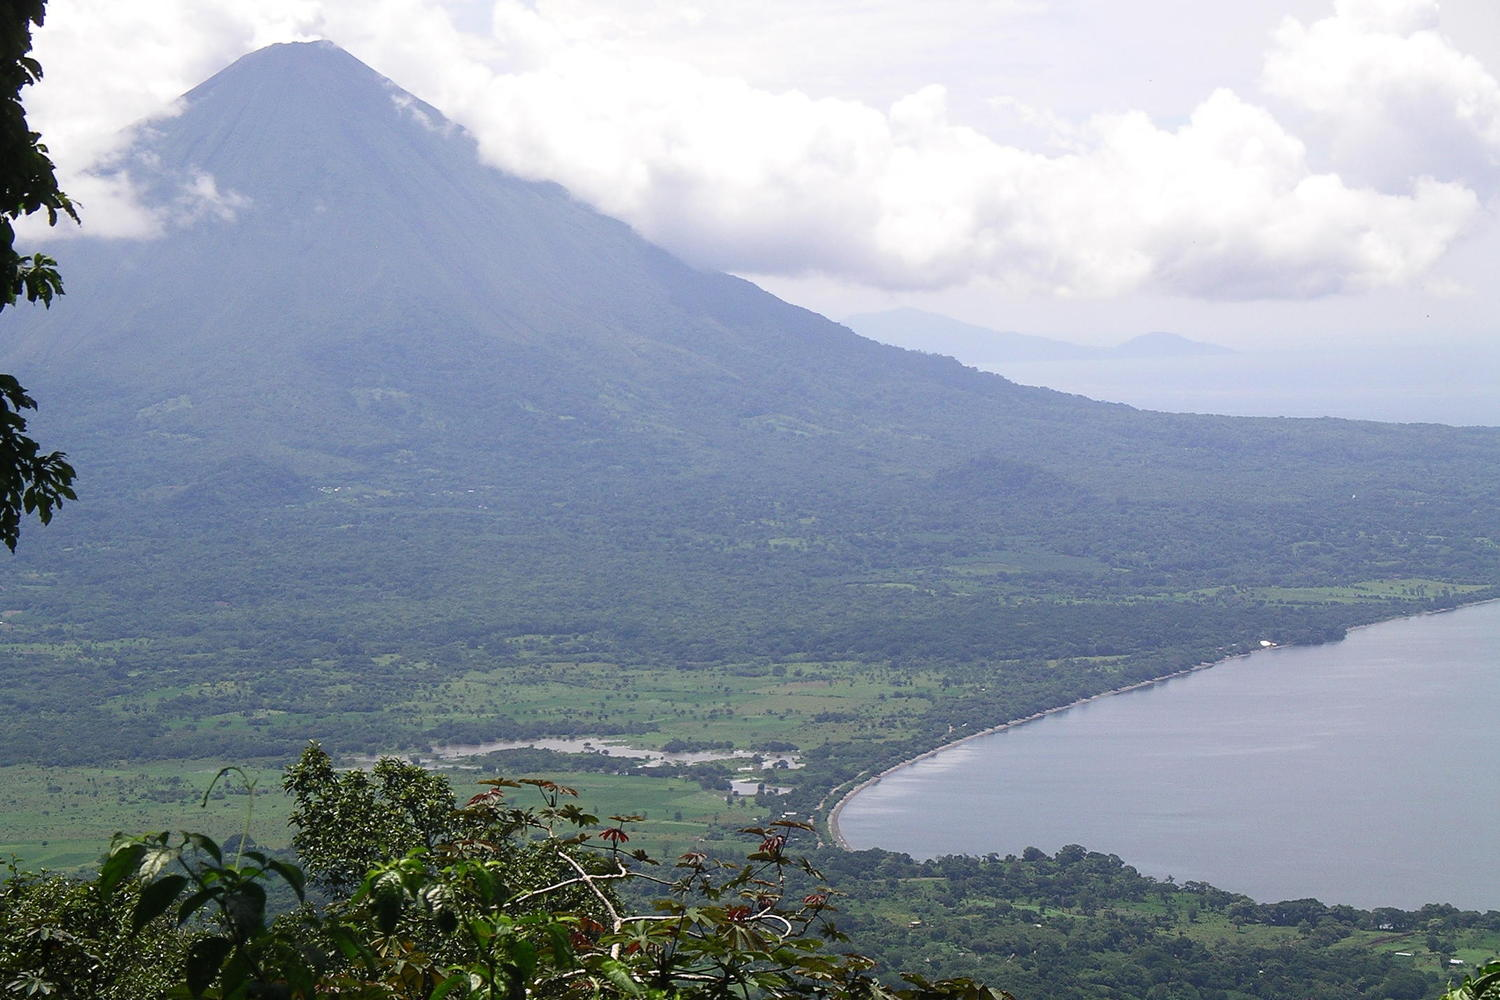 Looking out over Concepcion during the climb up Maderas on Ometepe Island